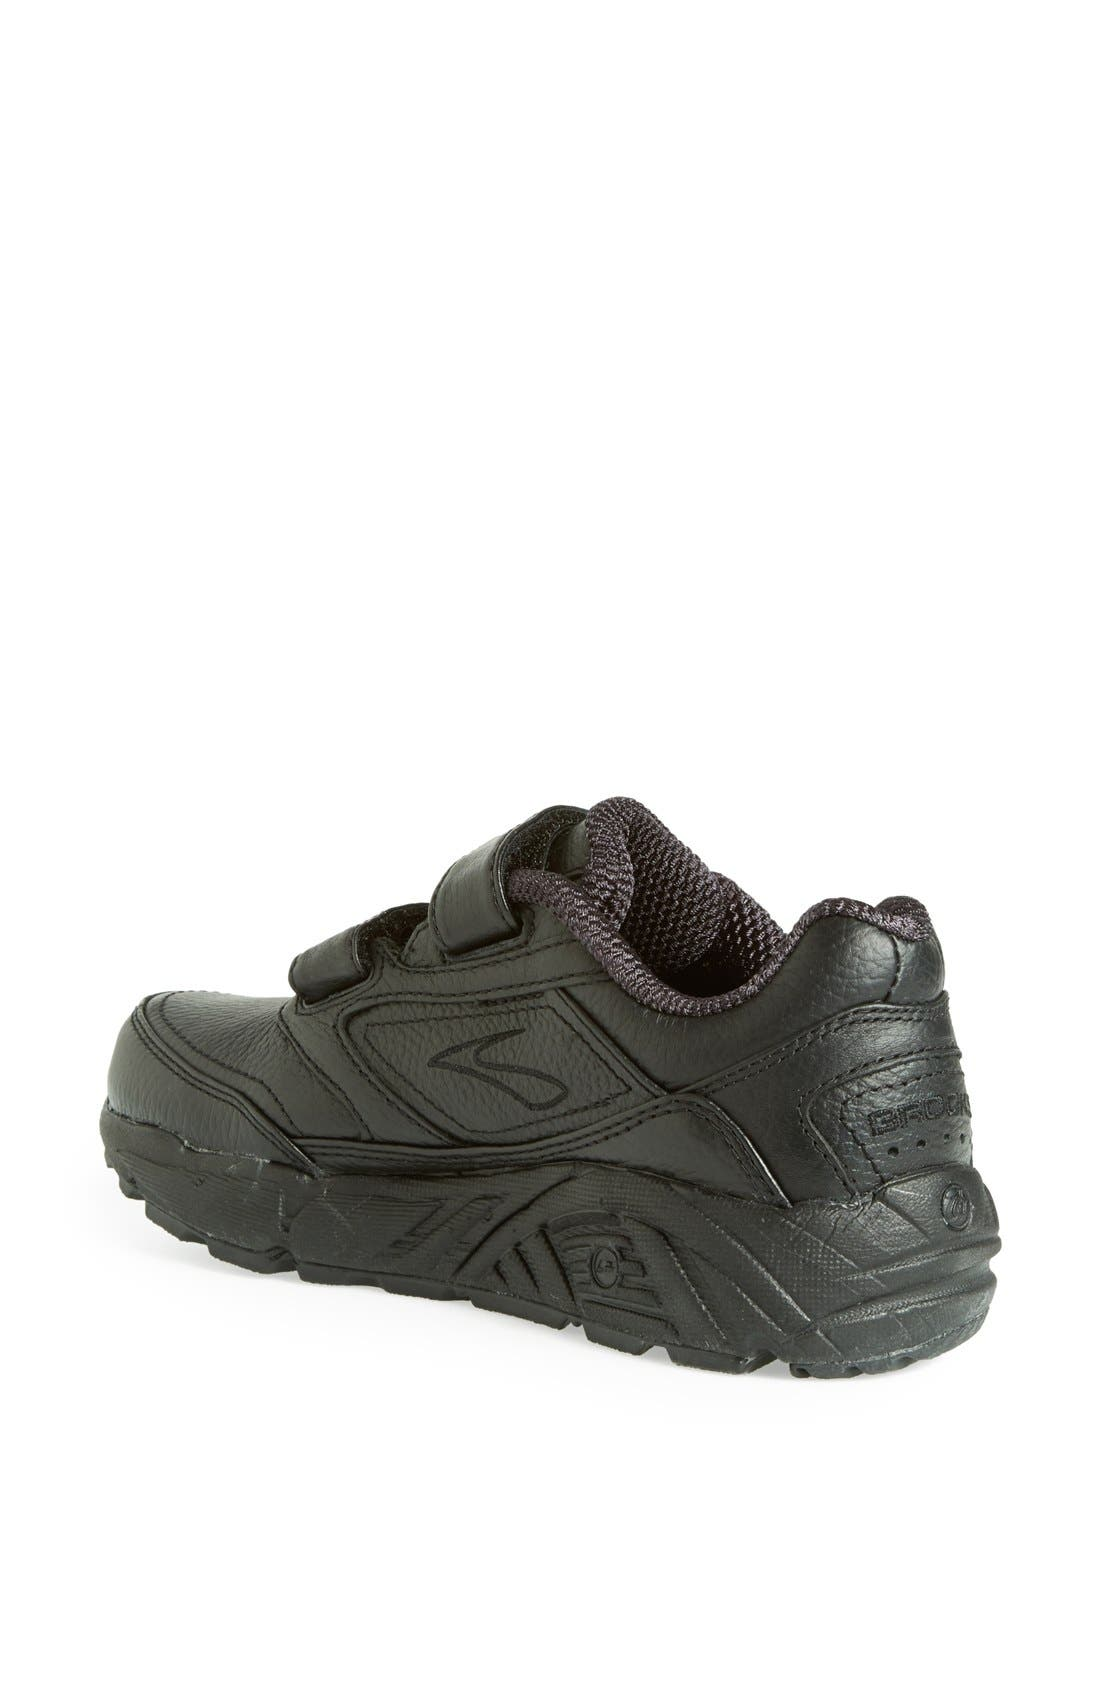 Alternate Image 2  - Brooks 'Addiction' Walking Shoe (Women)